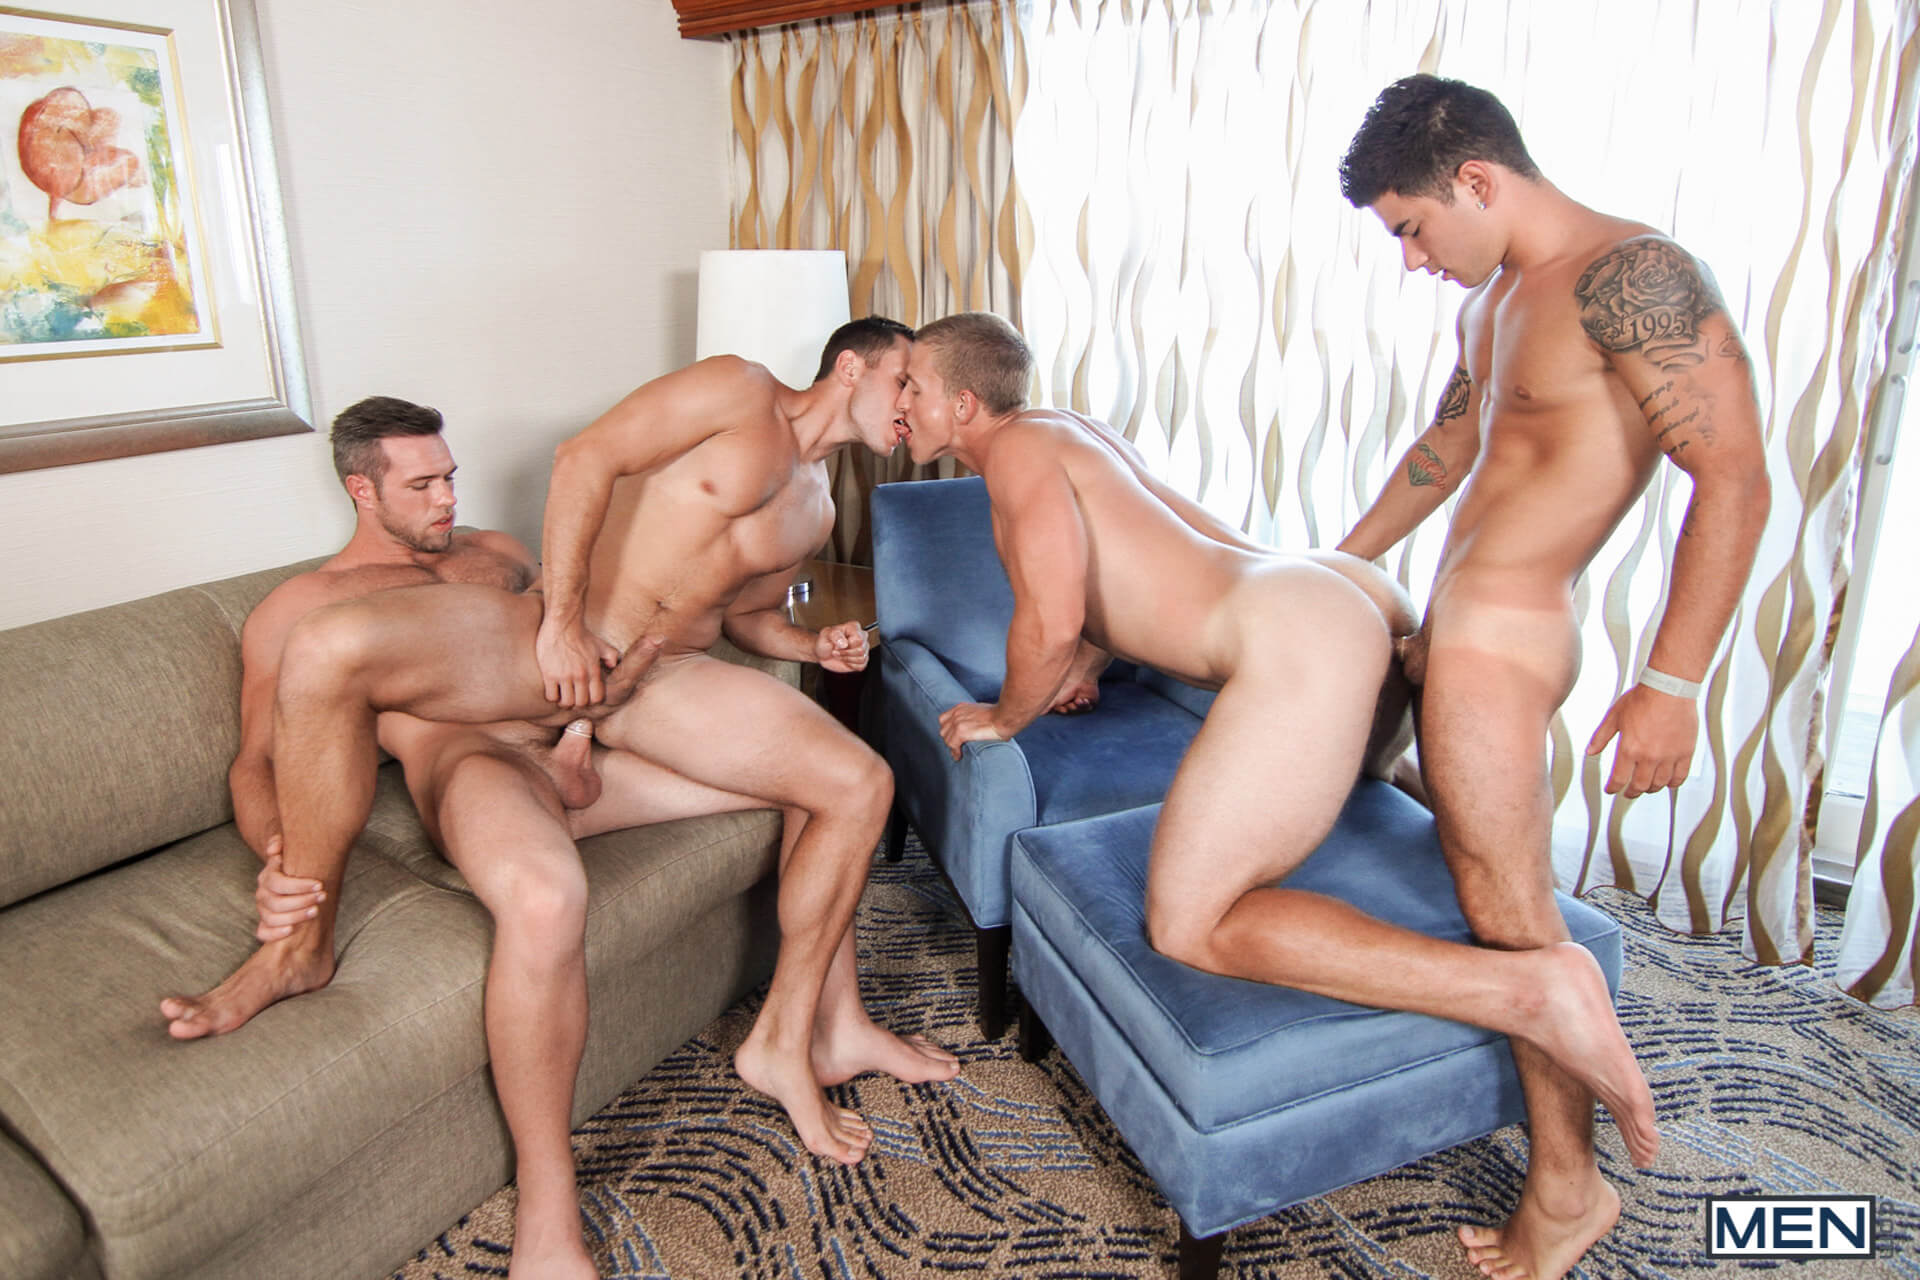 men jizz orgy men at sea part 7 alex mecum brenner bolton landon mycles vadim black gay porn blog image 21